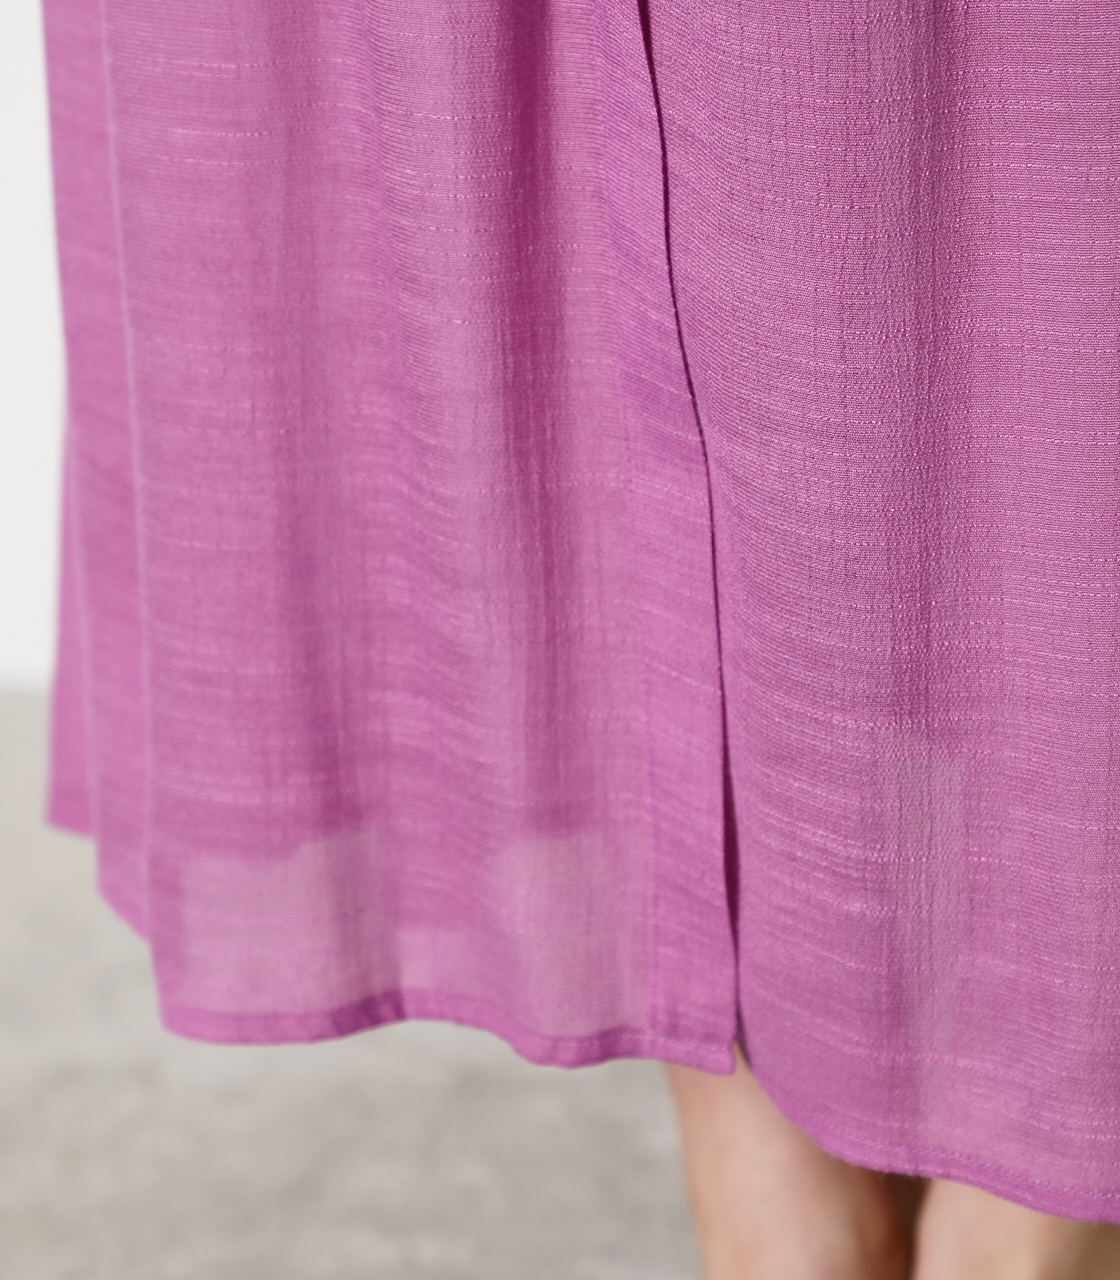 SHEER RELAX SKIRT/シアーリラックススカート 詳細画像 PUR 9